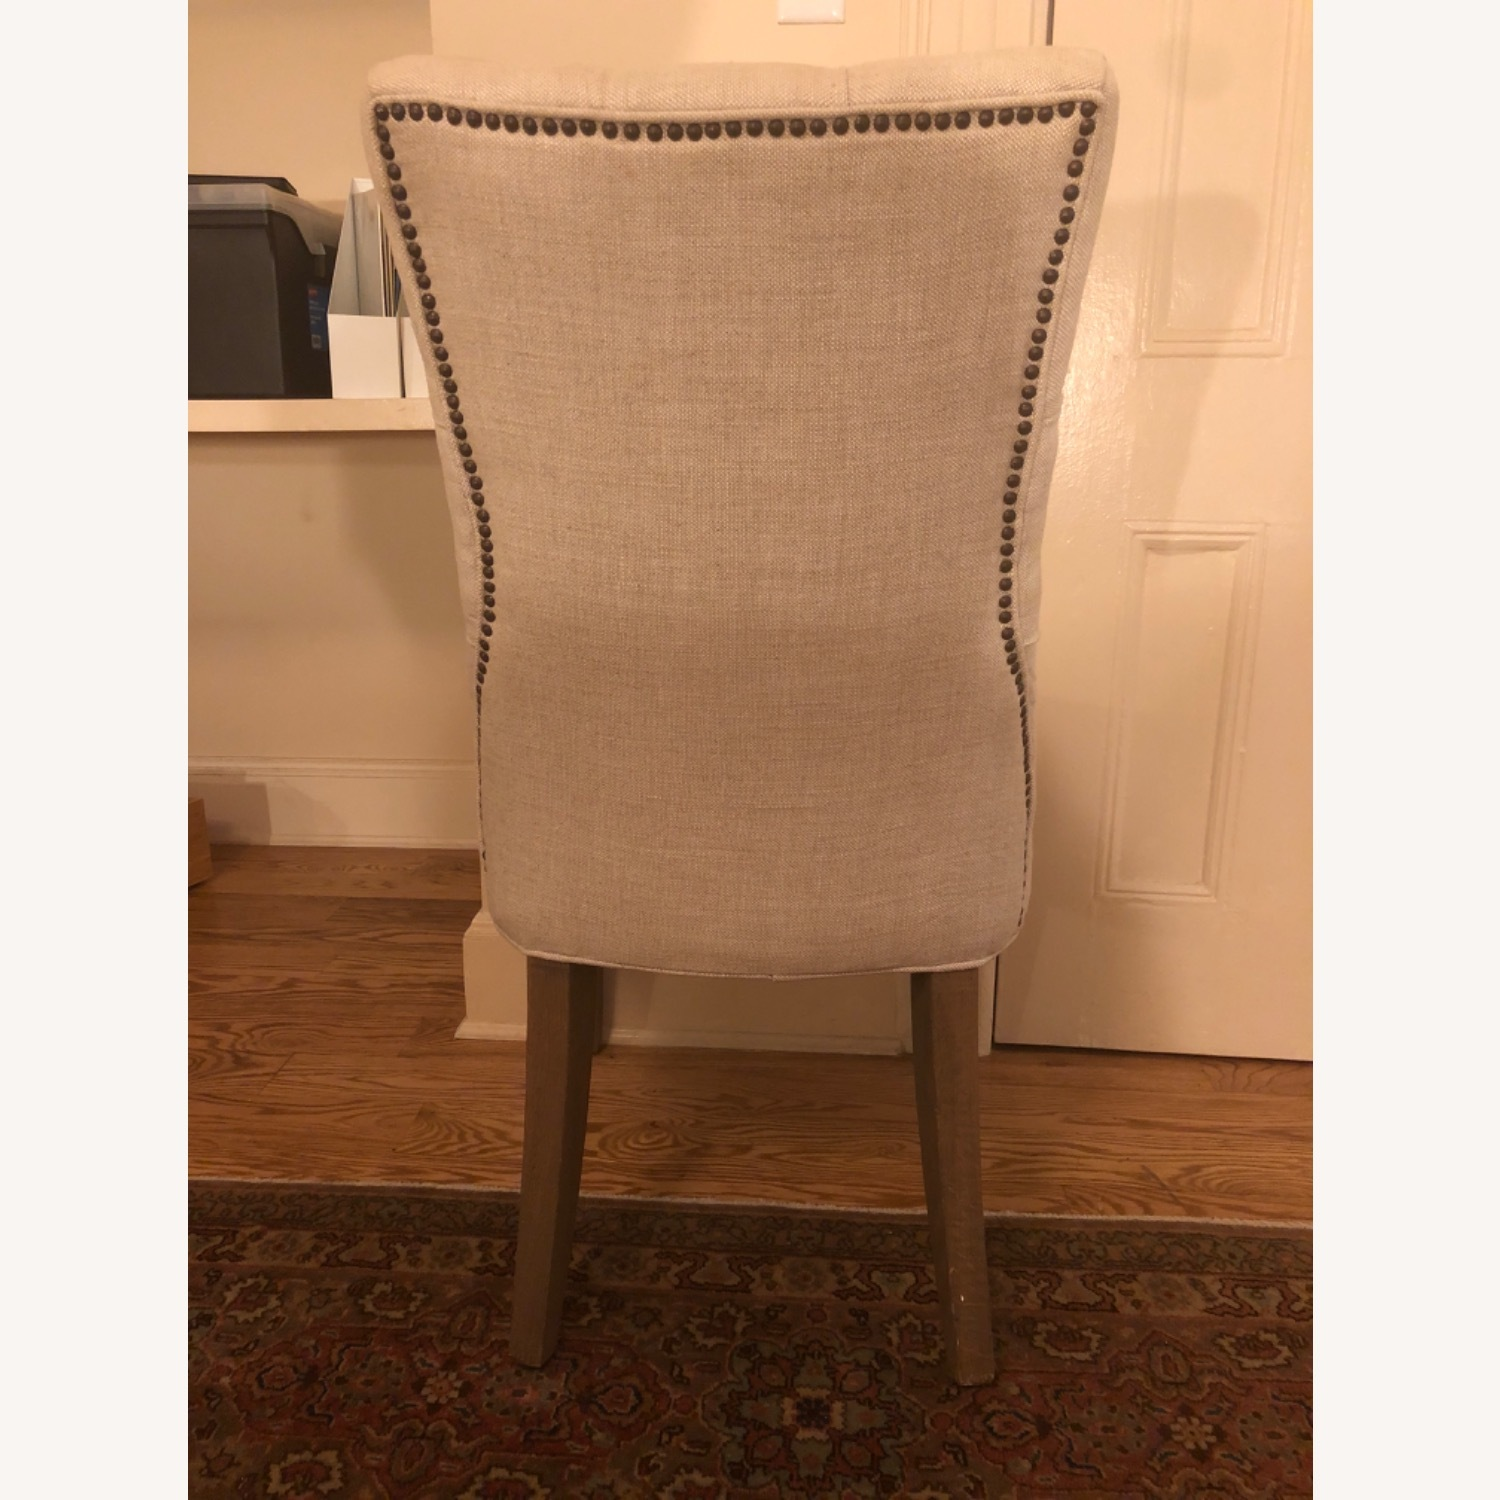 Restoration Hardware Martine Side Chair - image-3